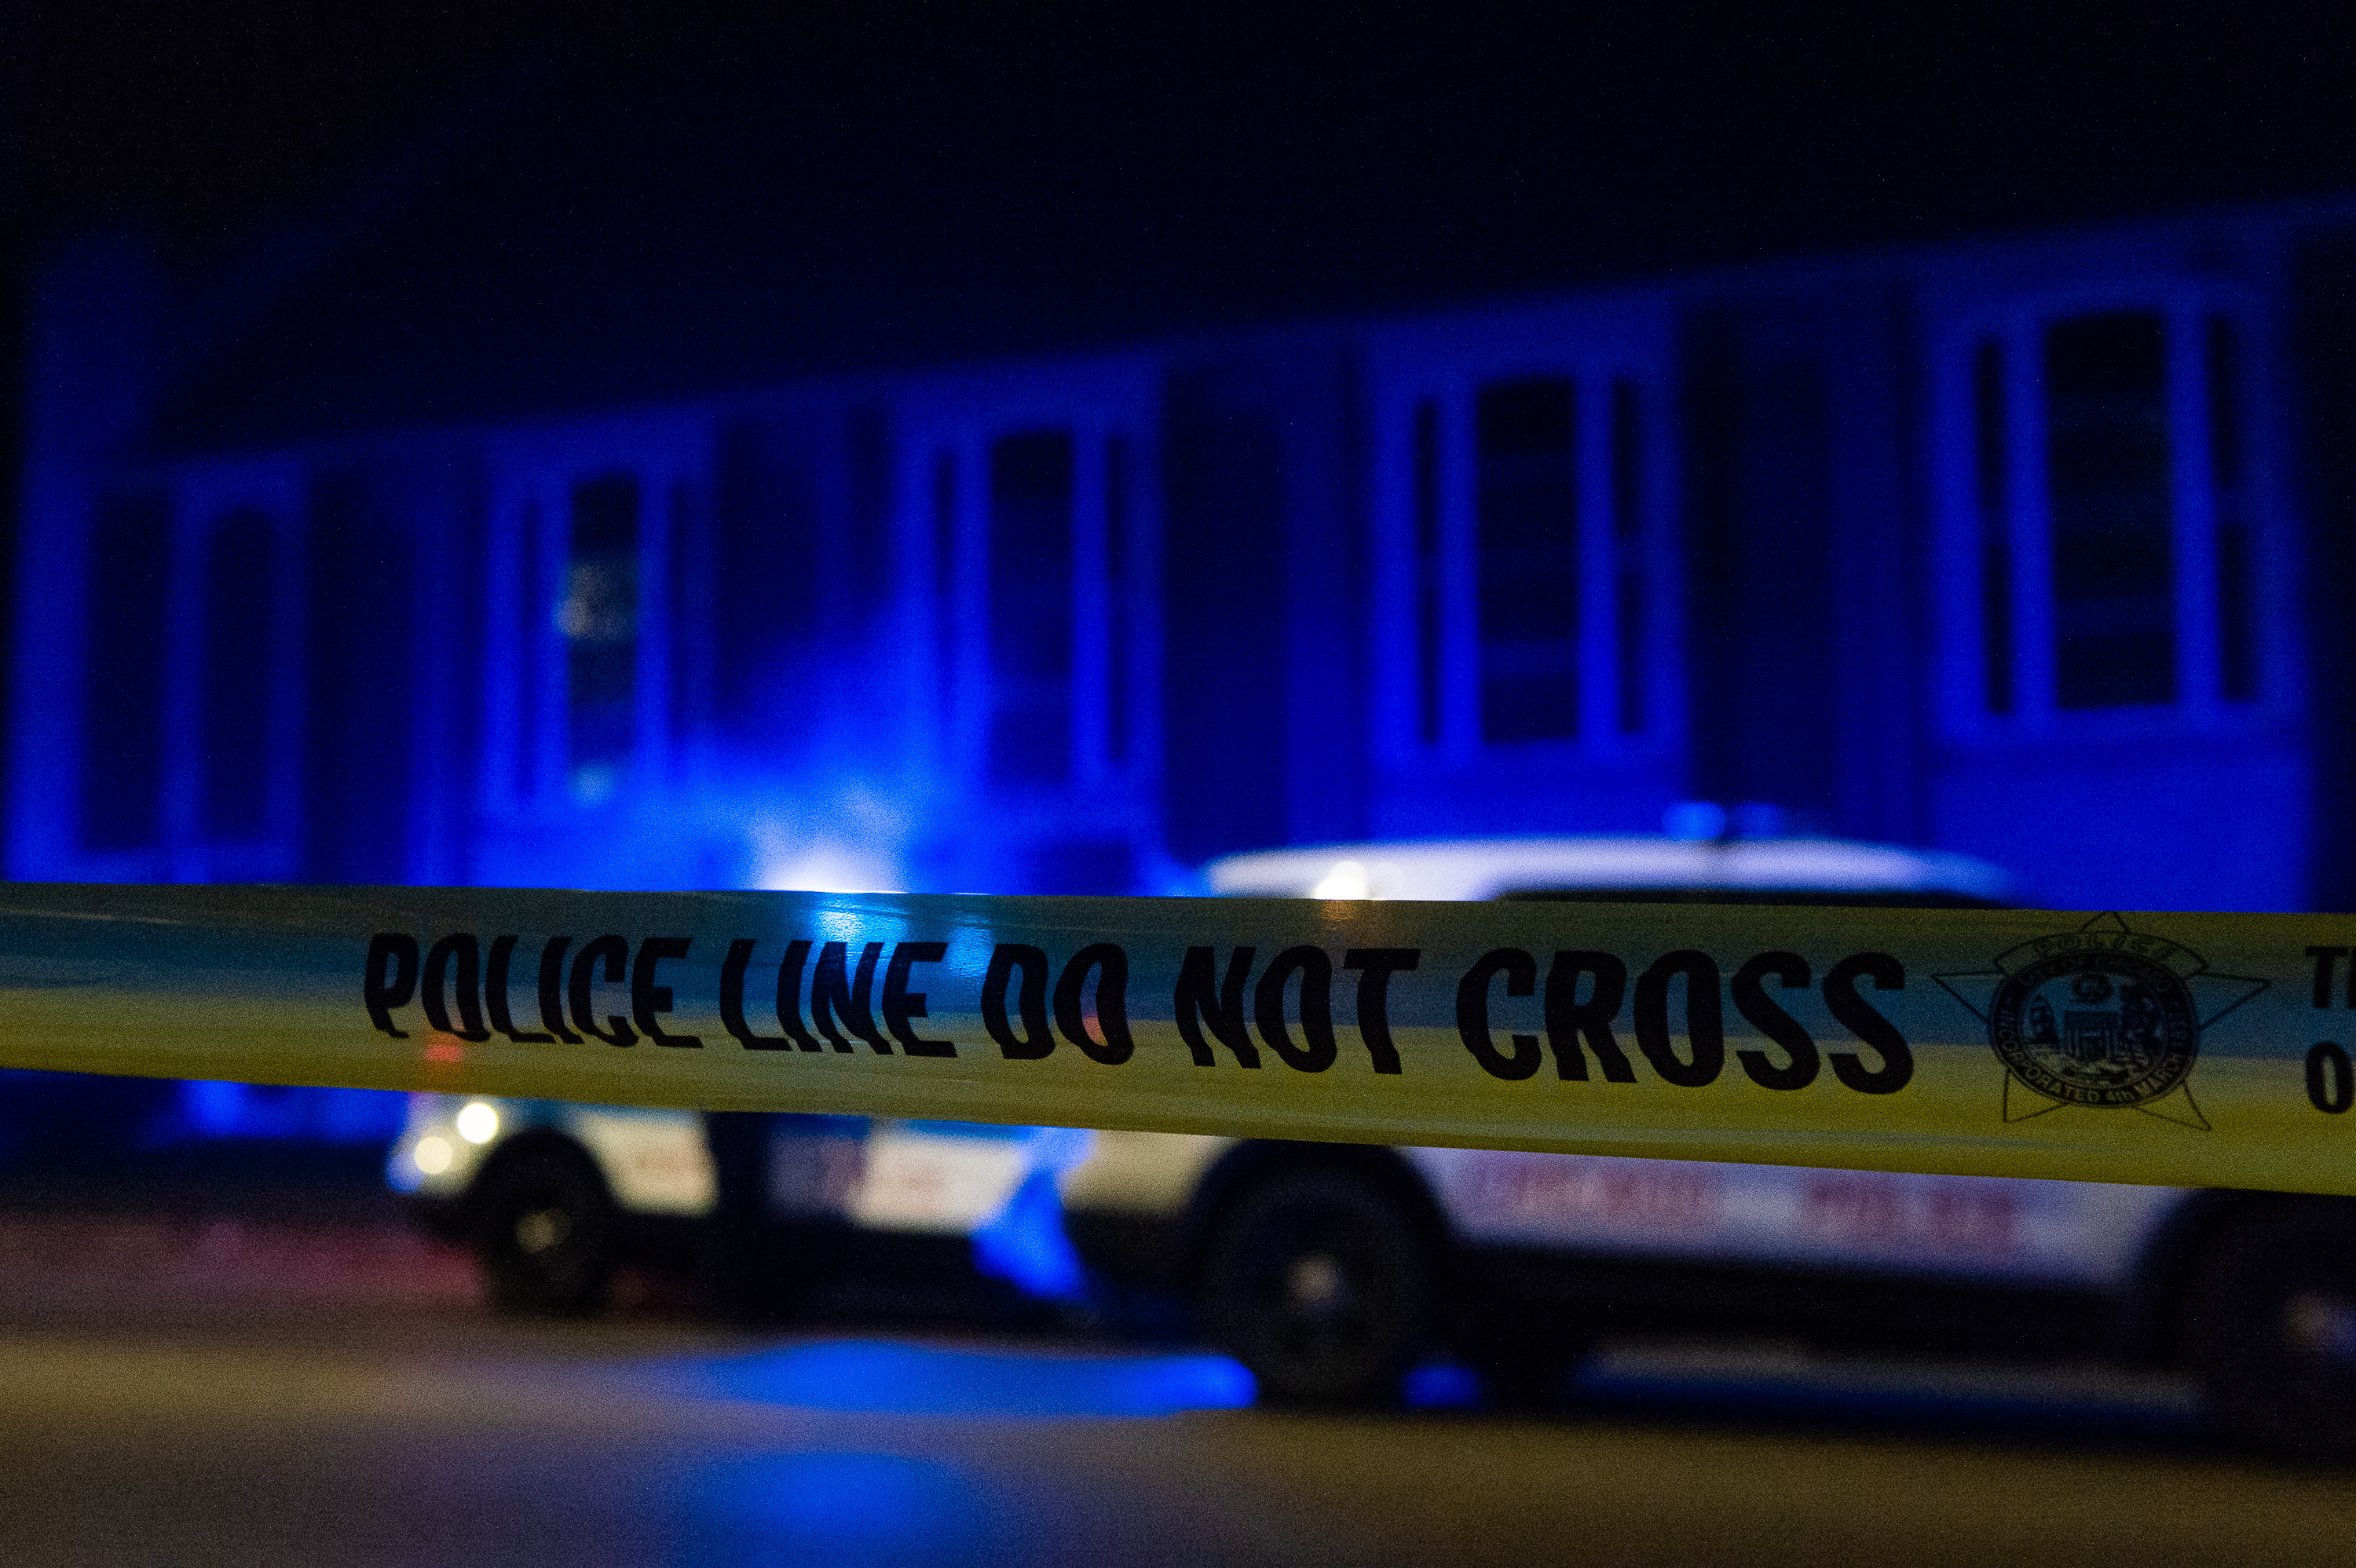 Two men were shot while driving Nov. 22, 2019, in the 3400 block of North Kedzie Avenue in Avondale.